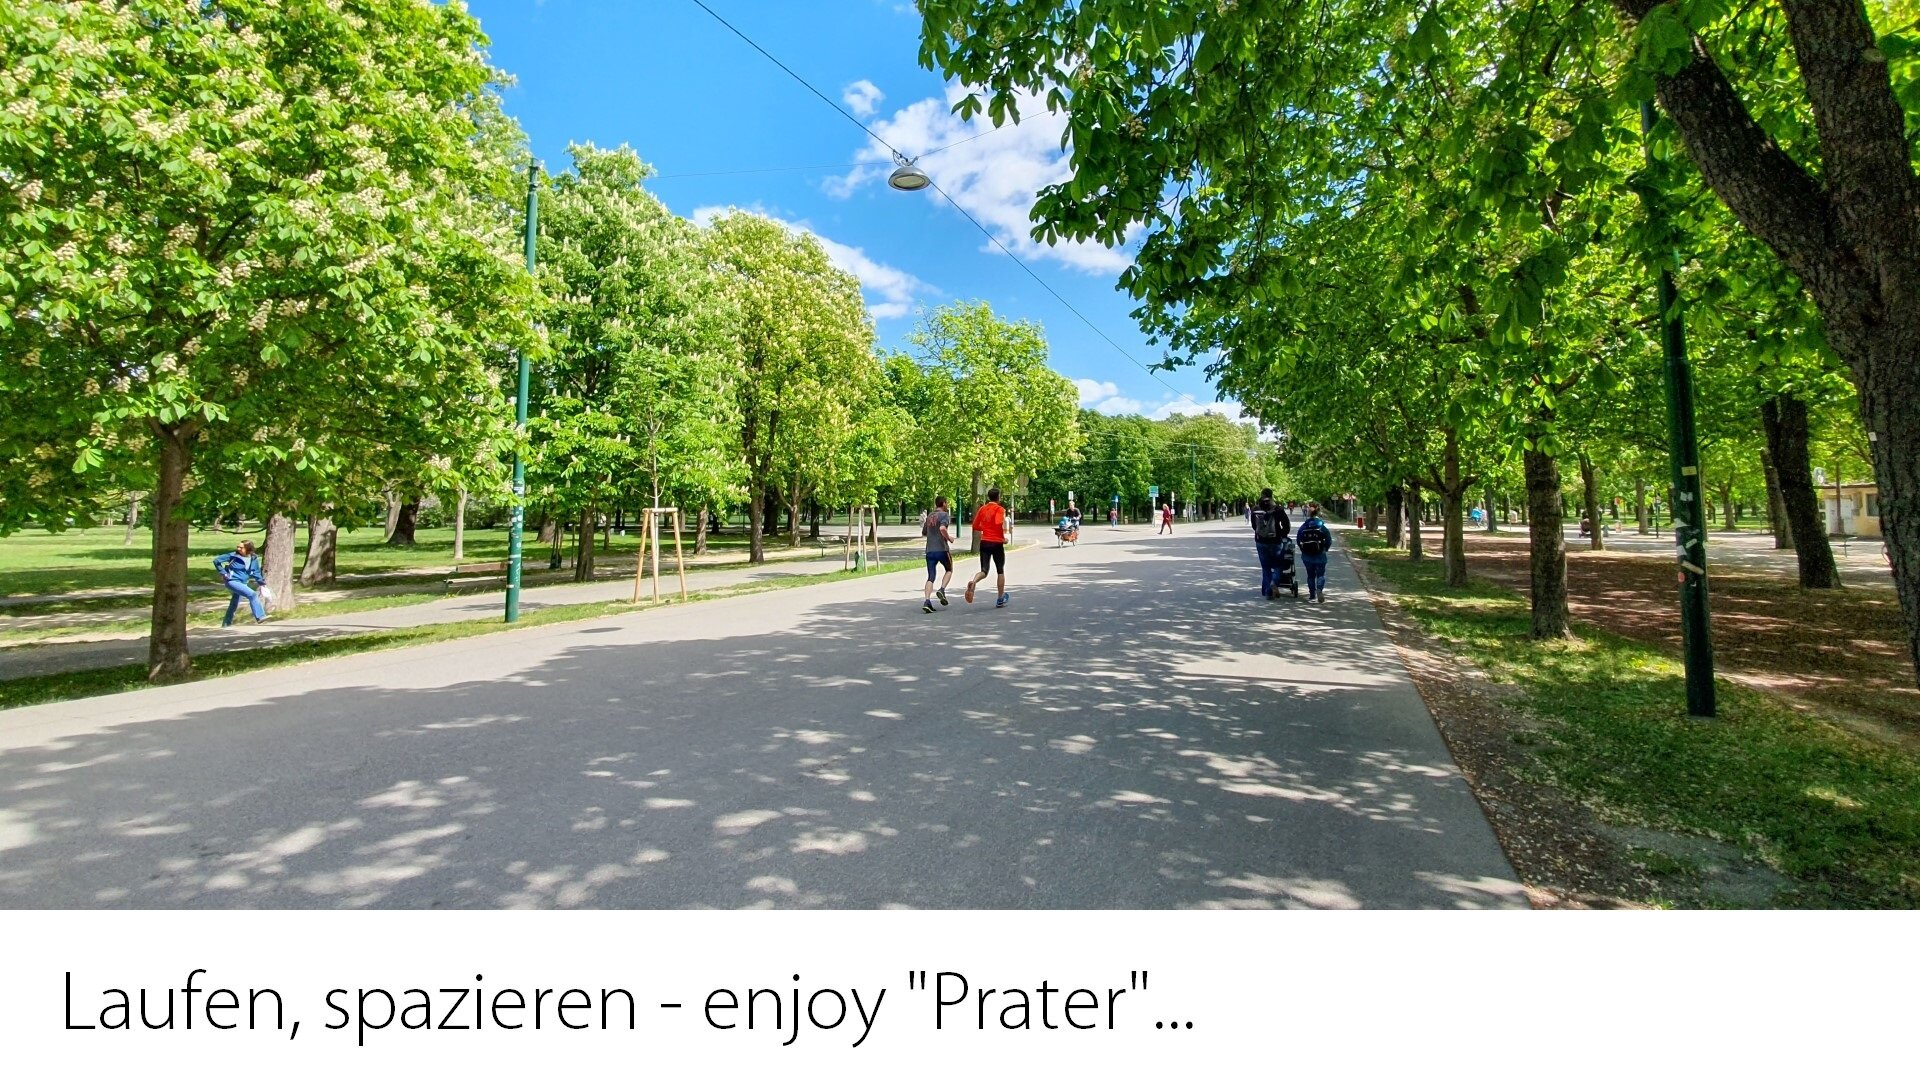 Enjoy Prater